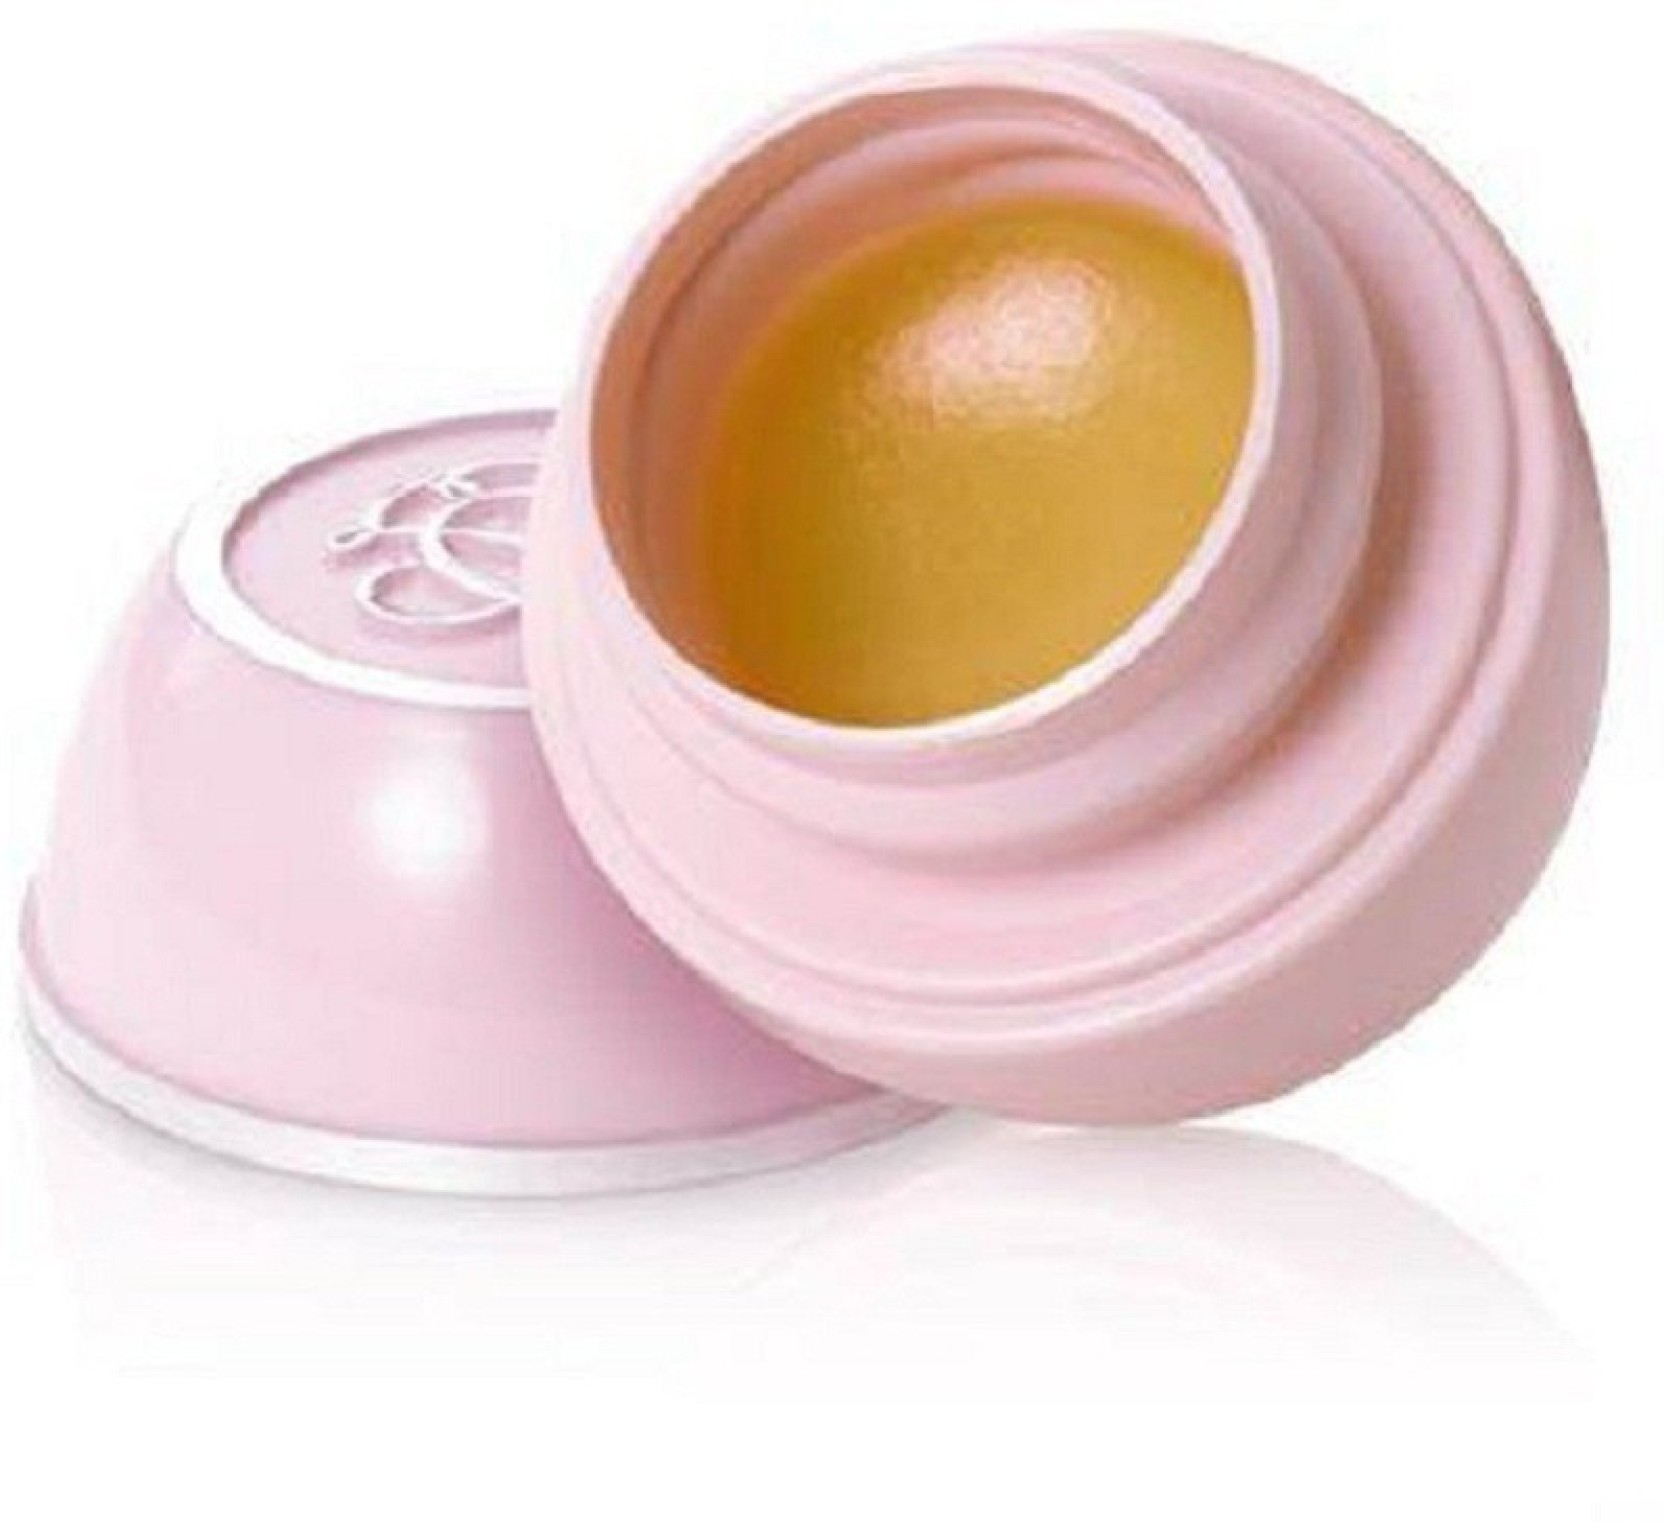 Oriflame Tender Care Protecting Balm Pink Price In India Buy Nivea Lip Butter Vanilla 167 Gr Add To Cart